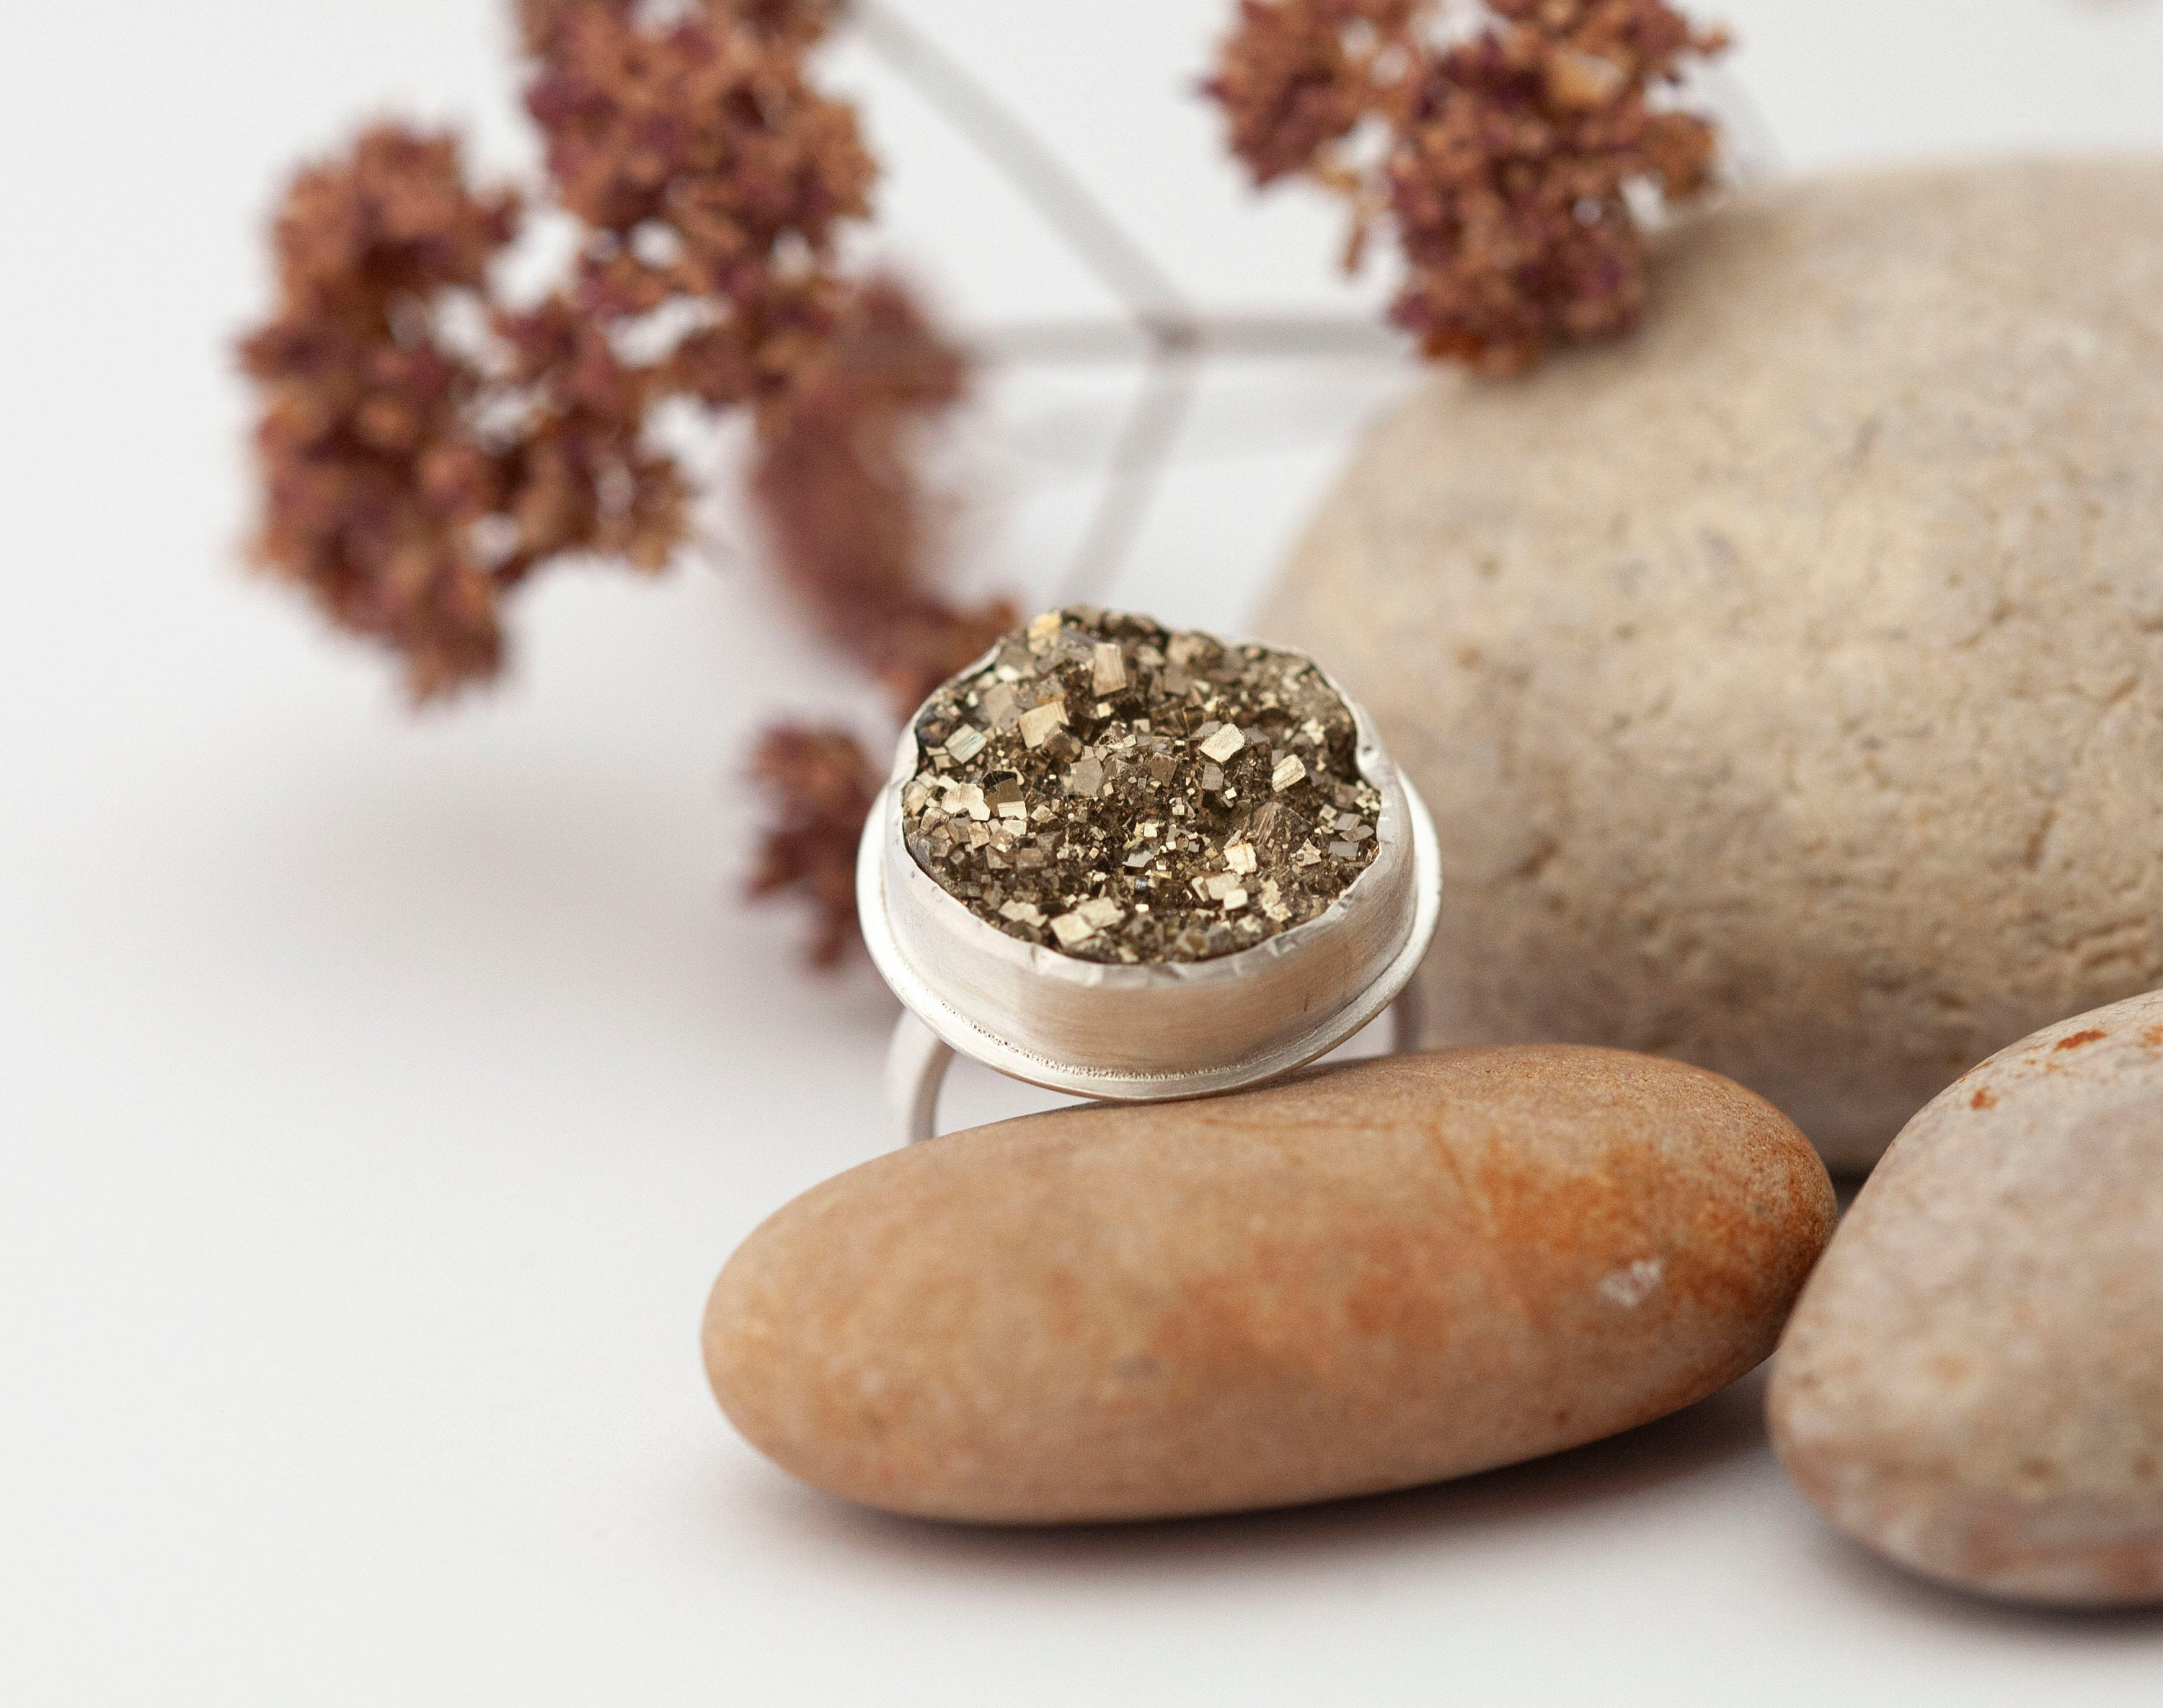 size 7.25 // 55 • OOAK Silver ring with druzzy pyrite • ready to ship